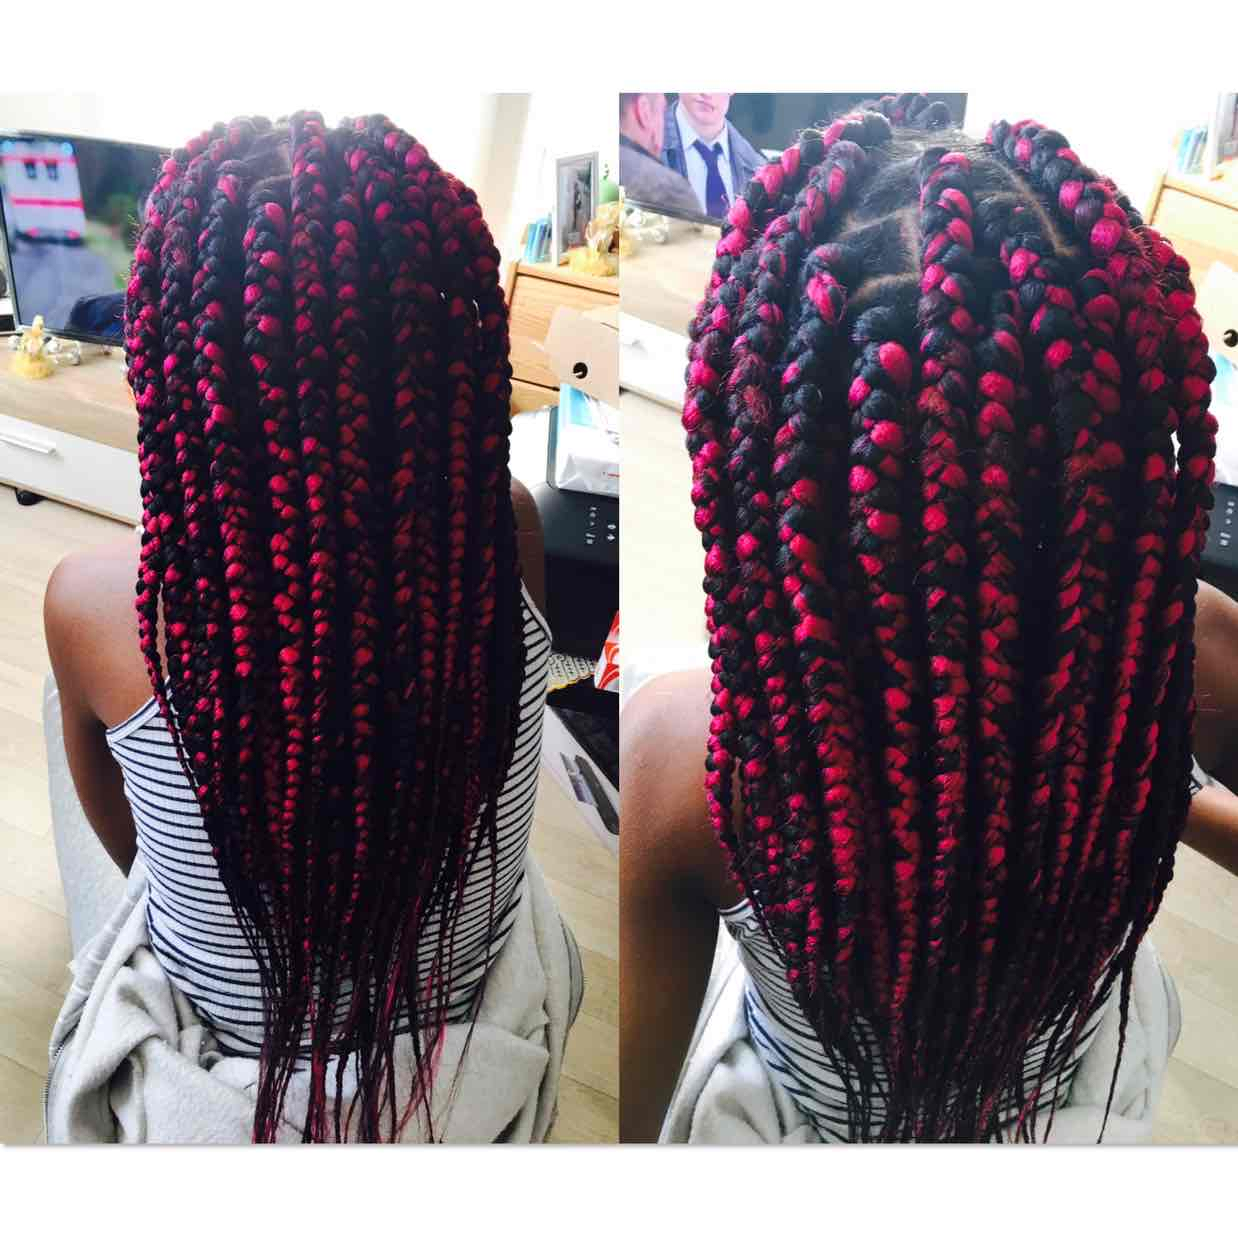 salon de coiffure afro tresse tresses box braids crochet braids vanilles tissages paris 75 77 78 91 92 93 94 95 OCHYHOZT